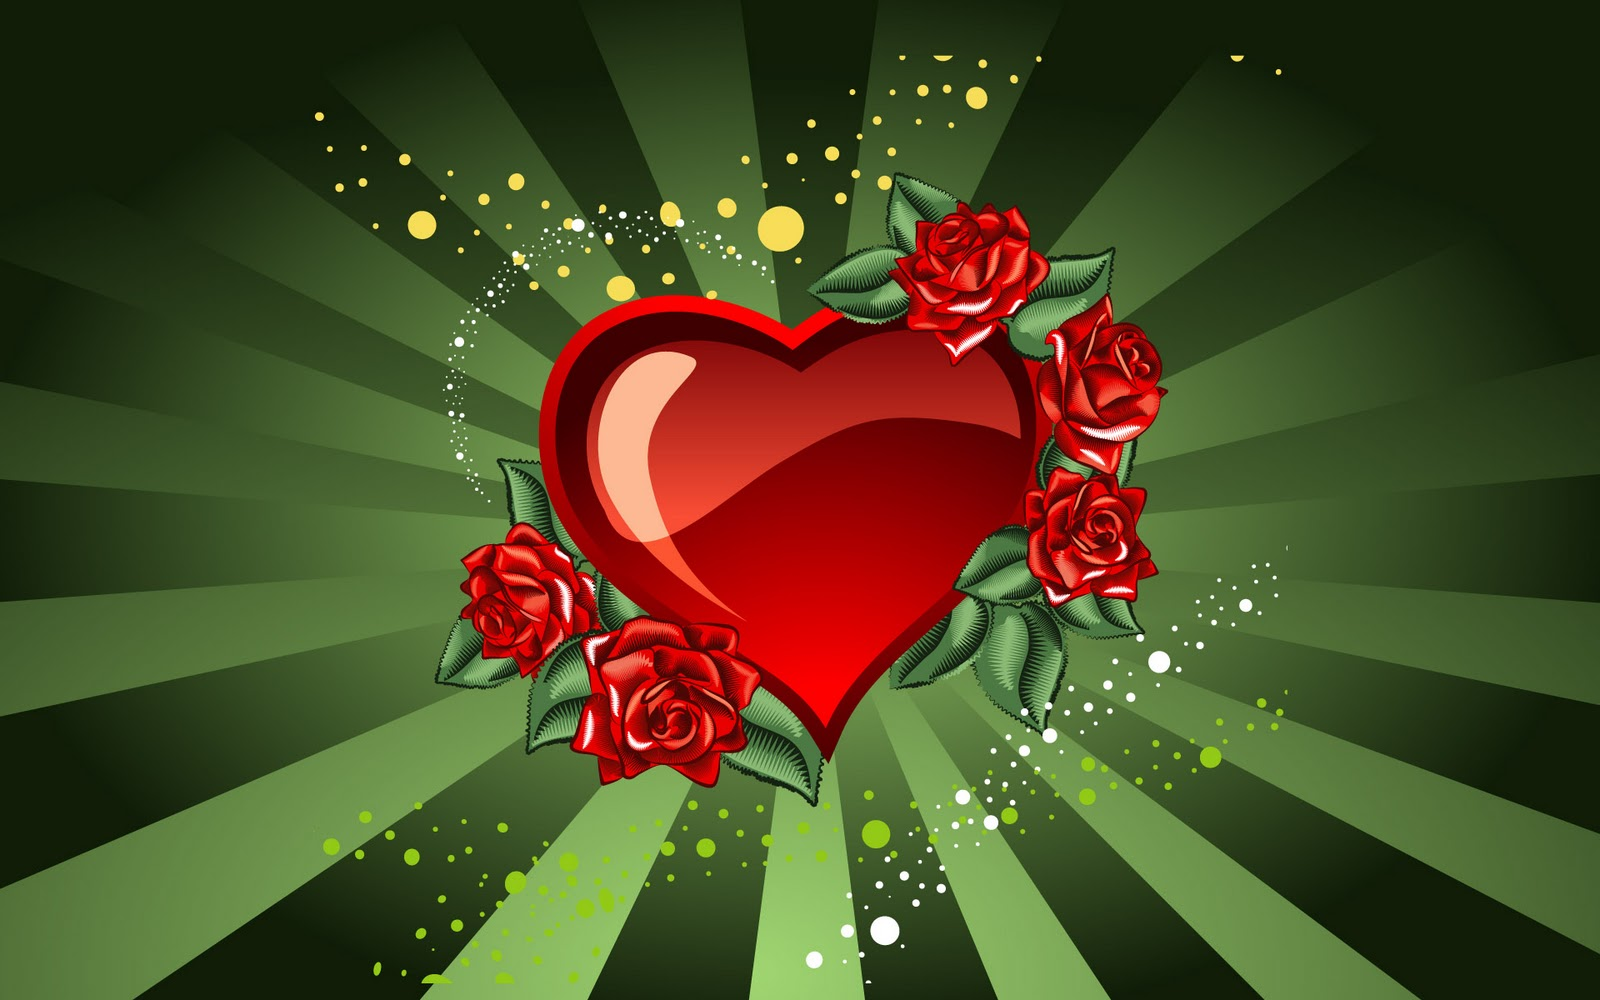 Wallpapers Picture Hd Lover Day Wallpapers Hd Lover Day Photos Hd Lover Day Images Hd Lover Day Img Hd Lover Day Pictures Hd Lover Day Photo Gallary Hd Lover Day Wallpapers Hd